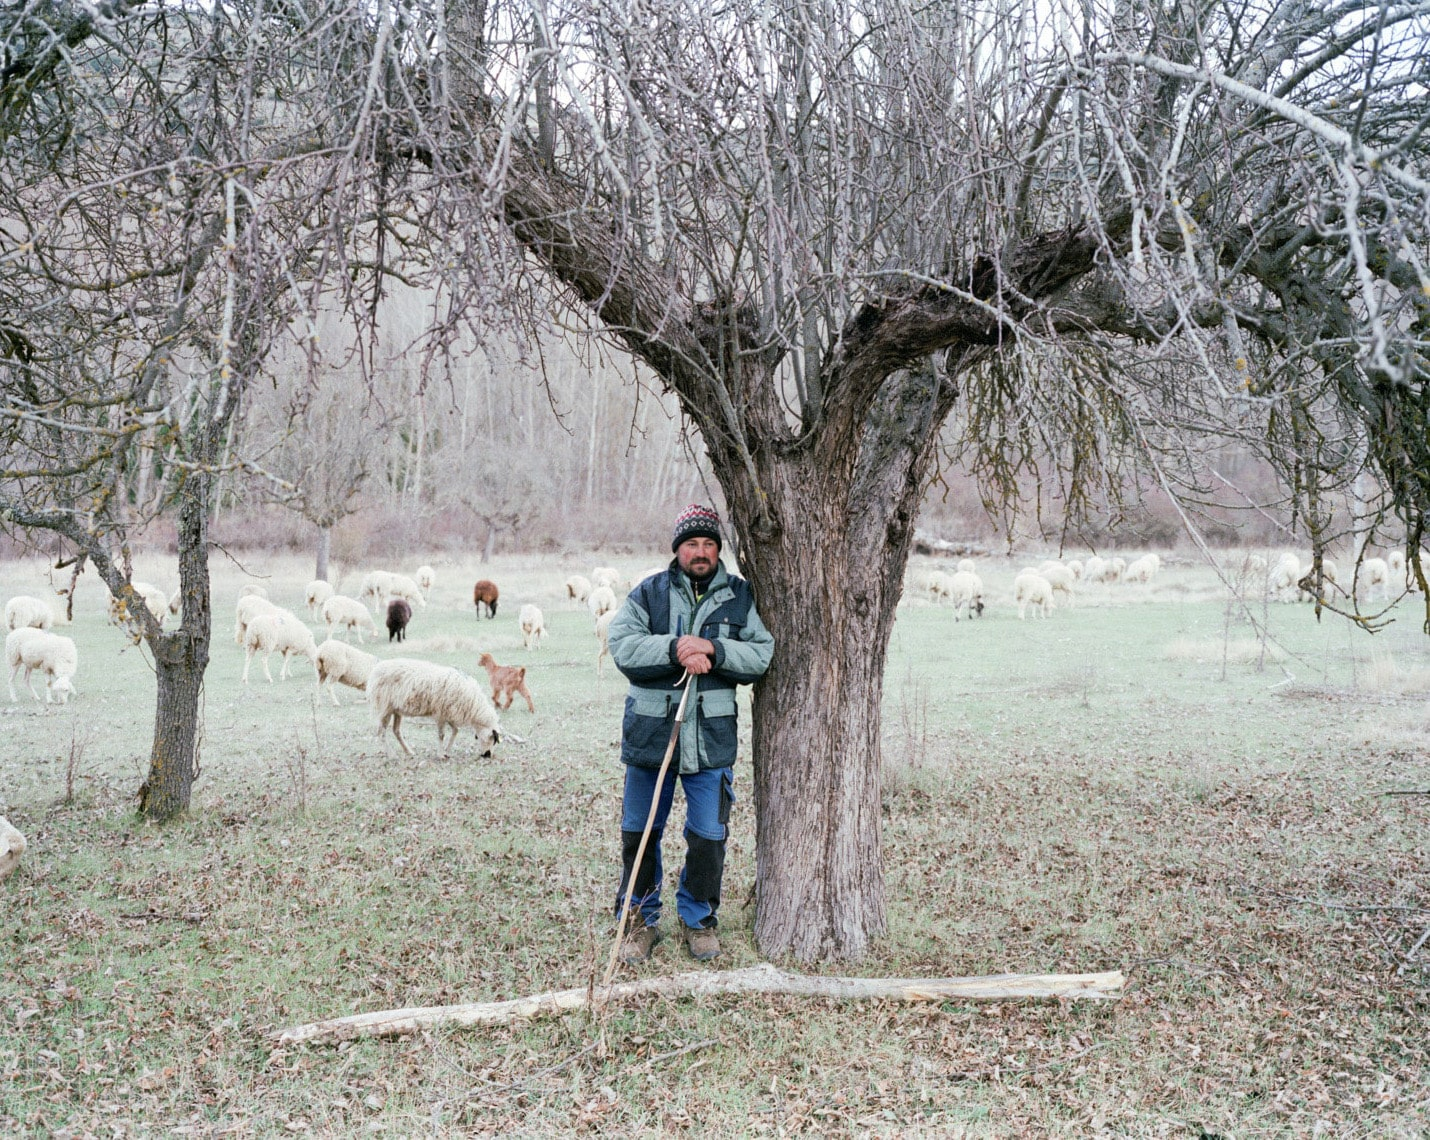 Mihai and the sheep